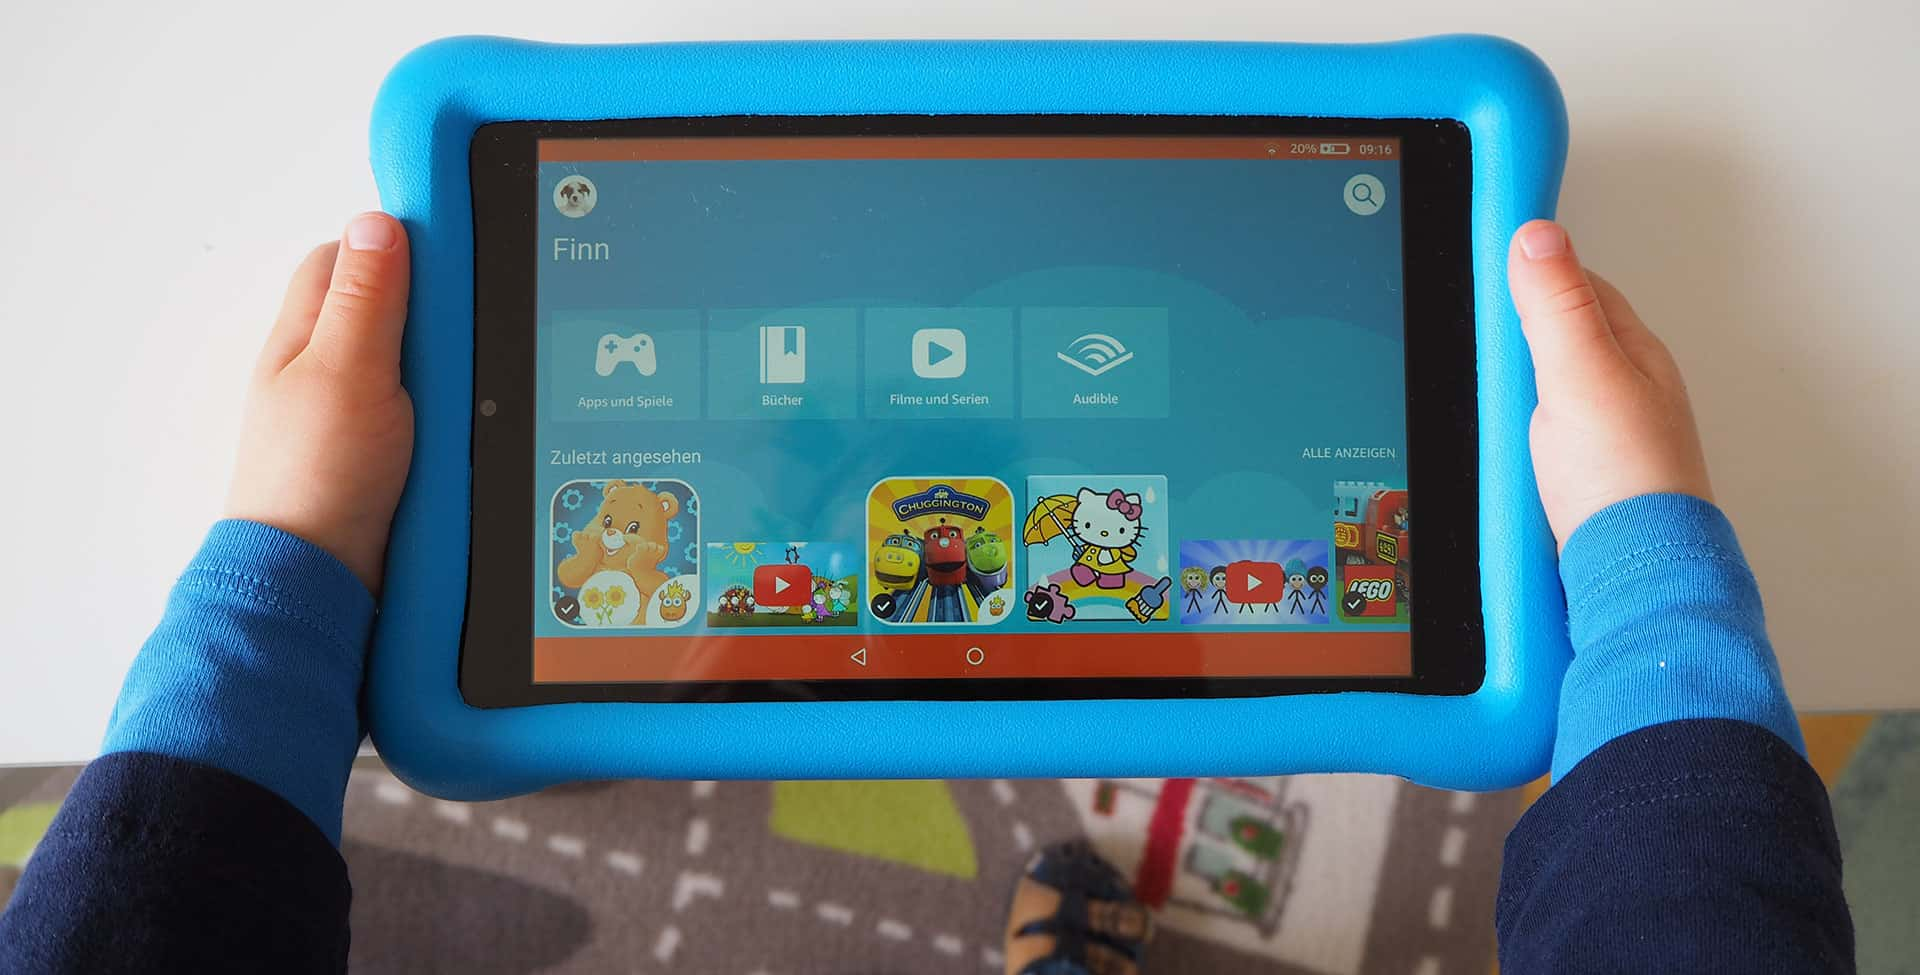 Das Amazon Fire HD 8 Kids Edition in der Hand eines Kind